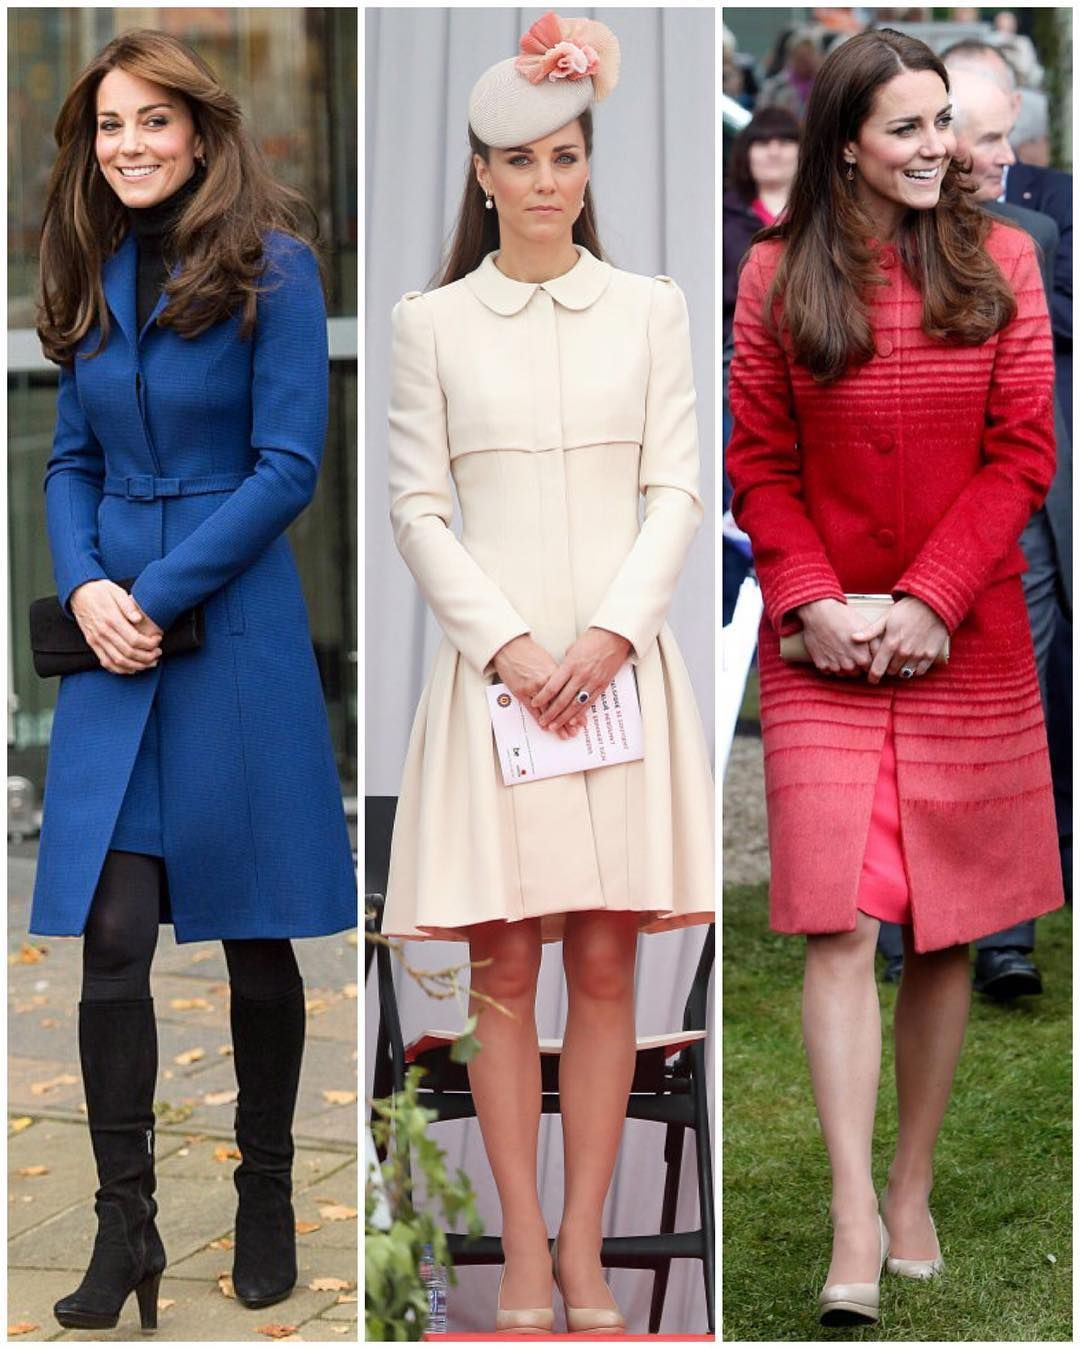 Kate's Diary of Upcoming Events. • 22 Feb: The Duchess of Cambridge will visit two Action for Children projects supporting vulnerable families in Wales. This will be her first engagement with Action for Children since taking over from the Queen as their patron. • 27 Feb: The Queen, Duke of Edinburgh, Duke & Duchess of Cambridge will host a reception at Buckingham Palace to mark the launch of the UK & India Year of Culture. • 28 Feb: Kate will visitRonald McDonald House UKEvelina London to…